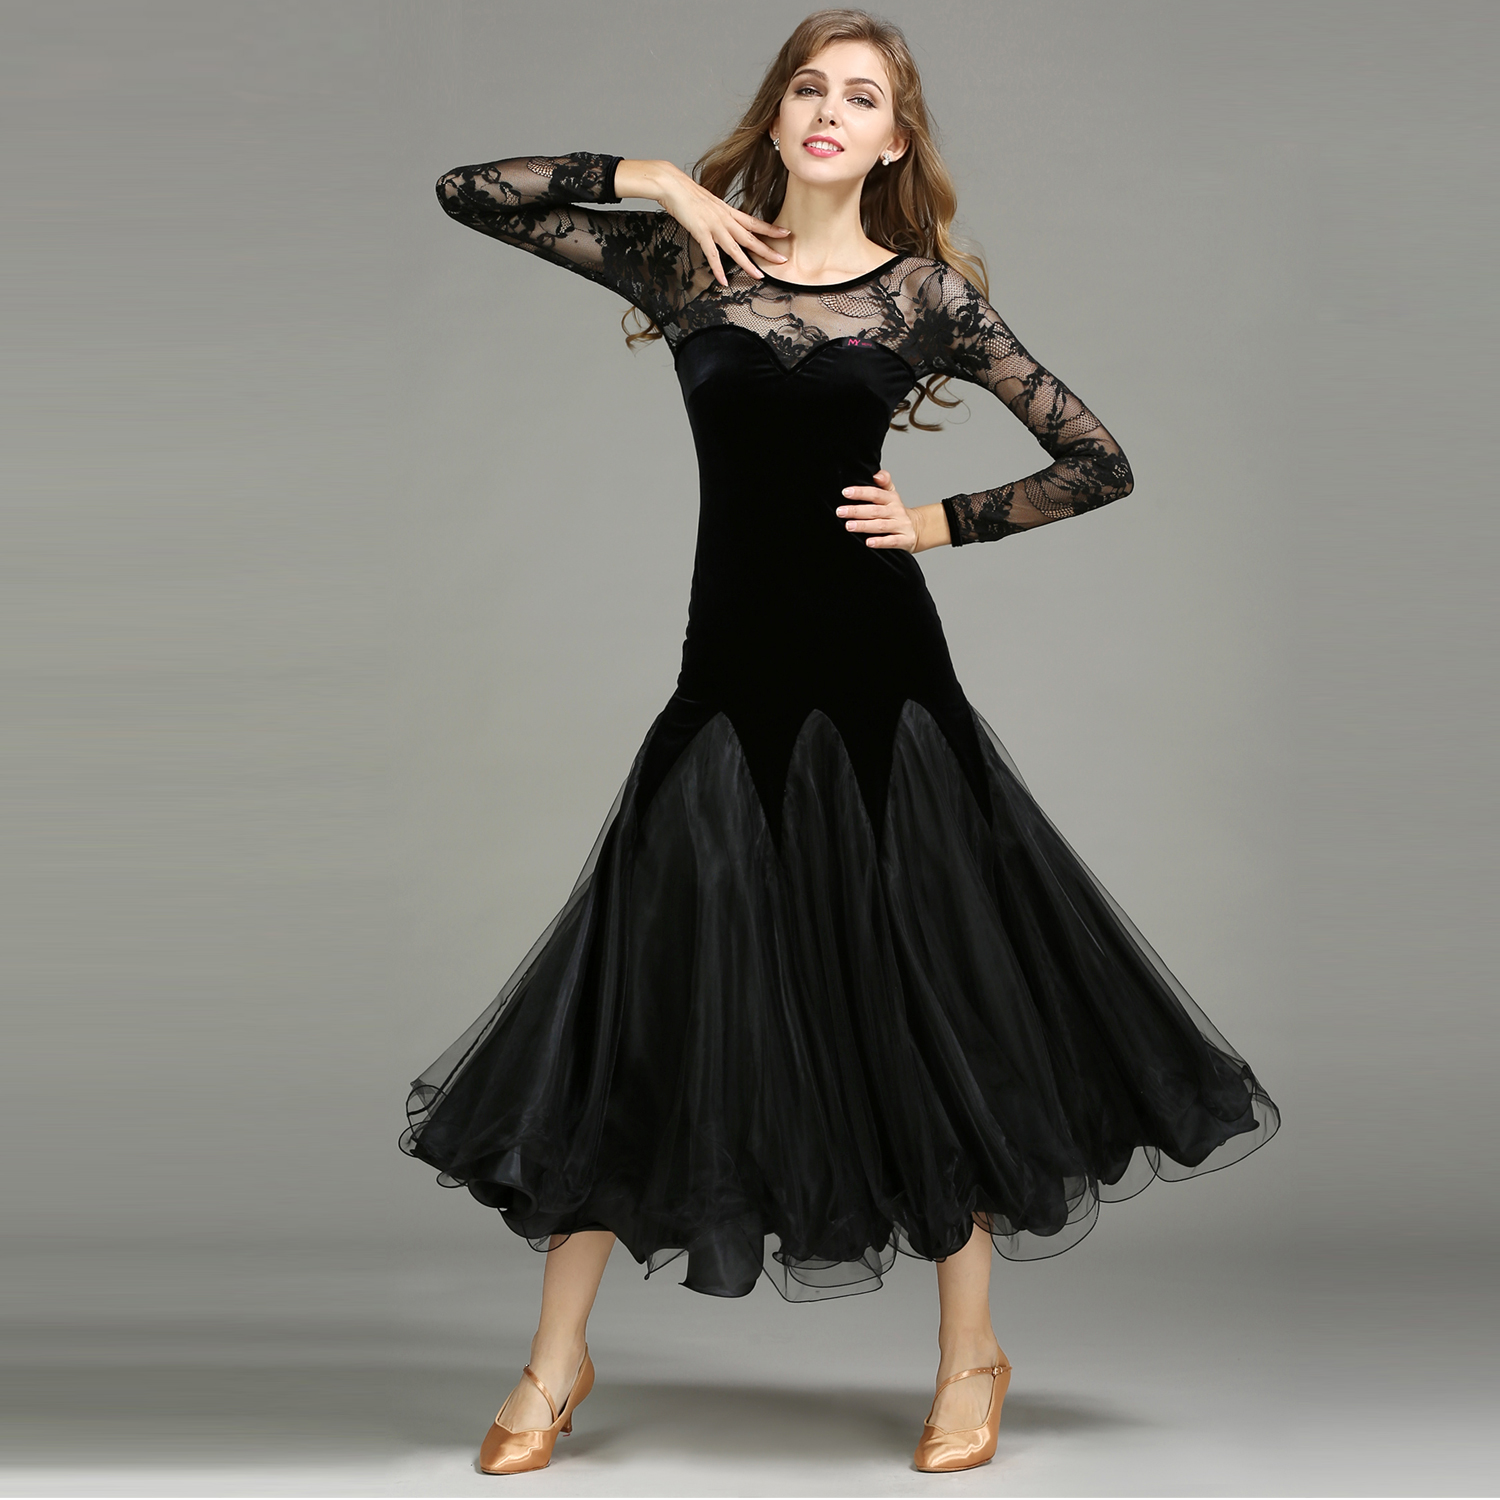 2018 NEW Modern Dance Costume Women Lady Adult Waltzing Tango Dance Dress Ballroom Costume Evening Party Dress 2017 new women ballroom dance dress organza sexy backless standard performance competition jazz waltz tango fox trot jigs suits